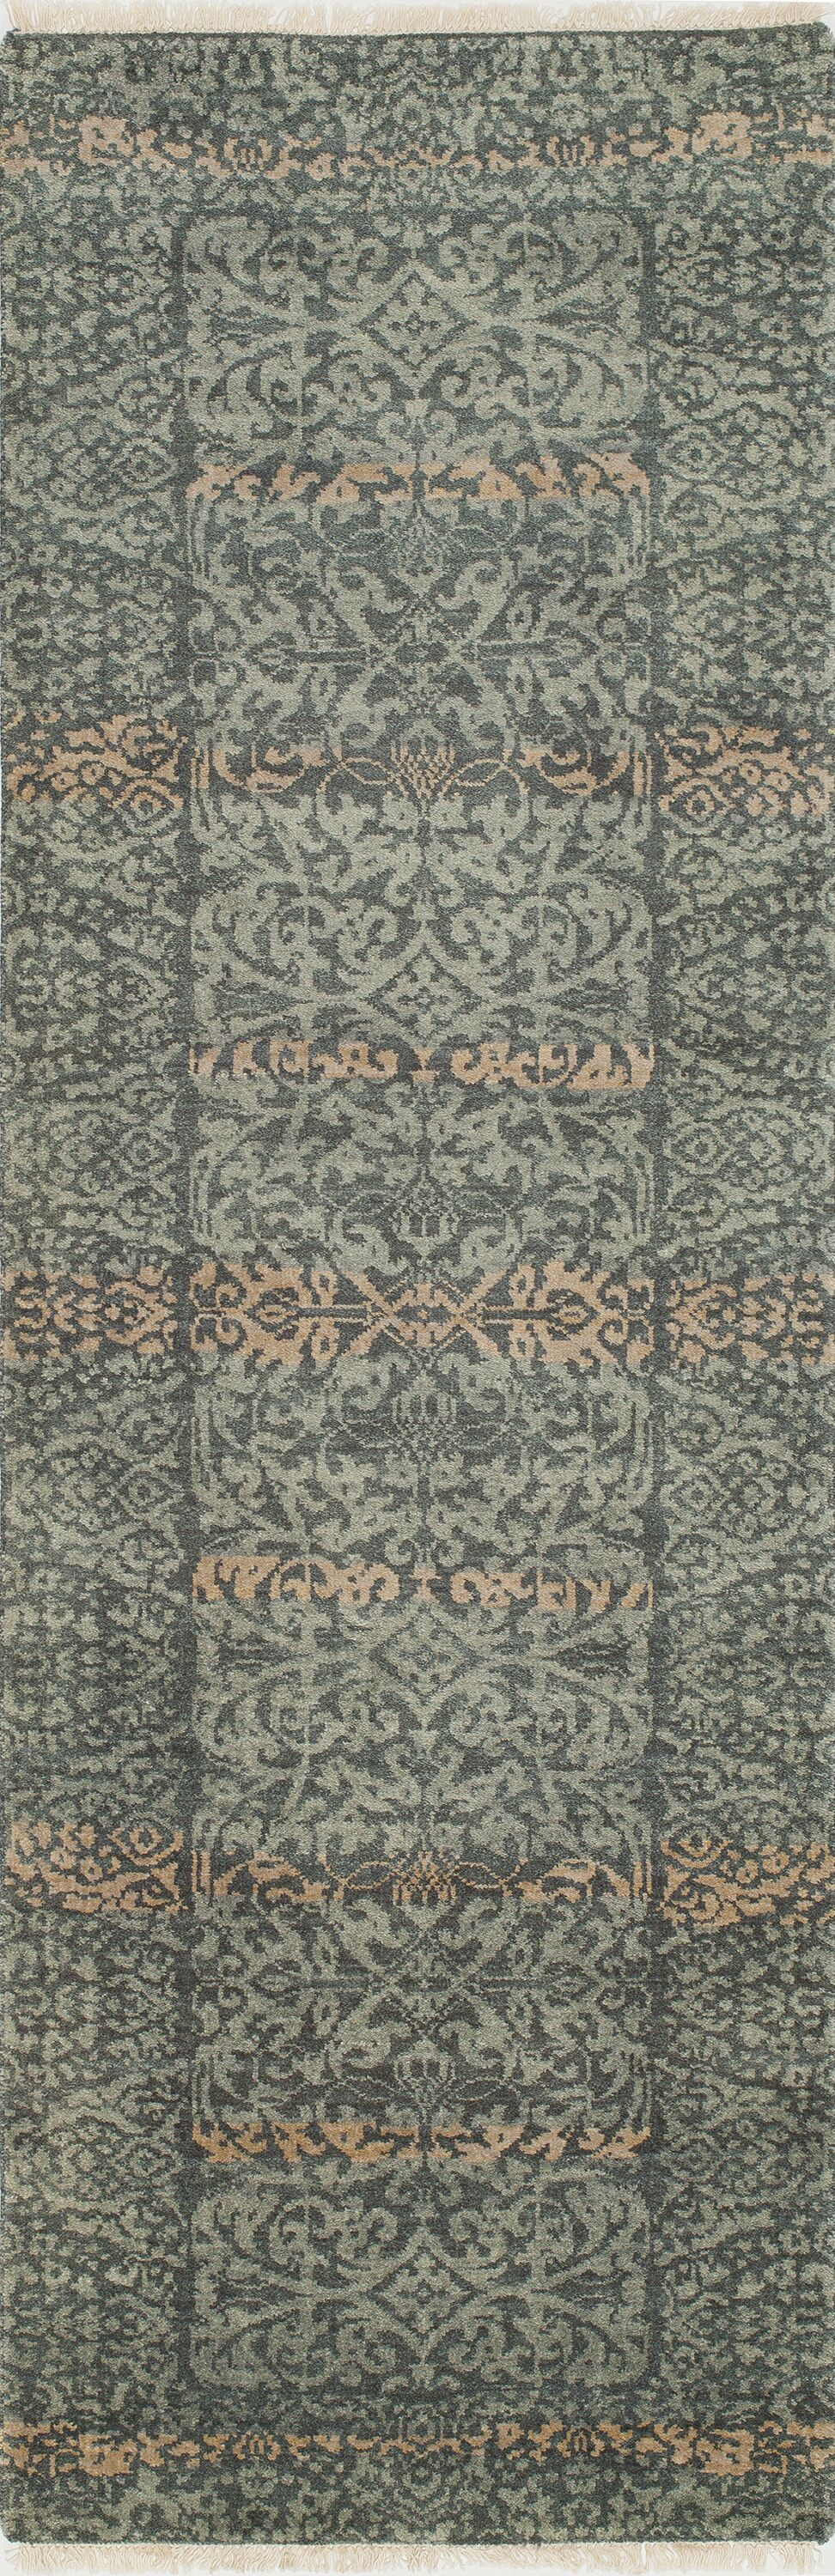 Landreneau Hand-Knotted Blue Knotted Rug Rug Size: Rectangle 2' x 3'